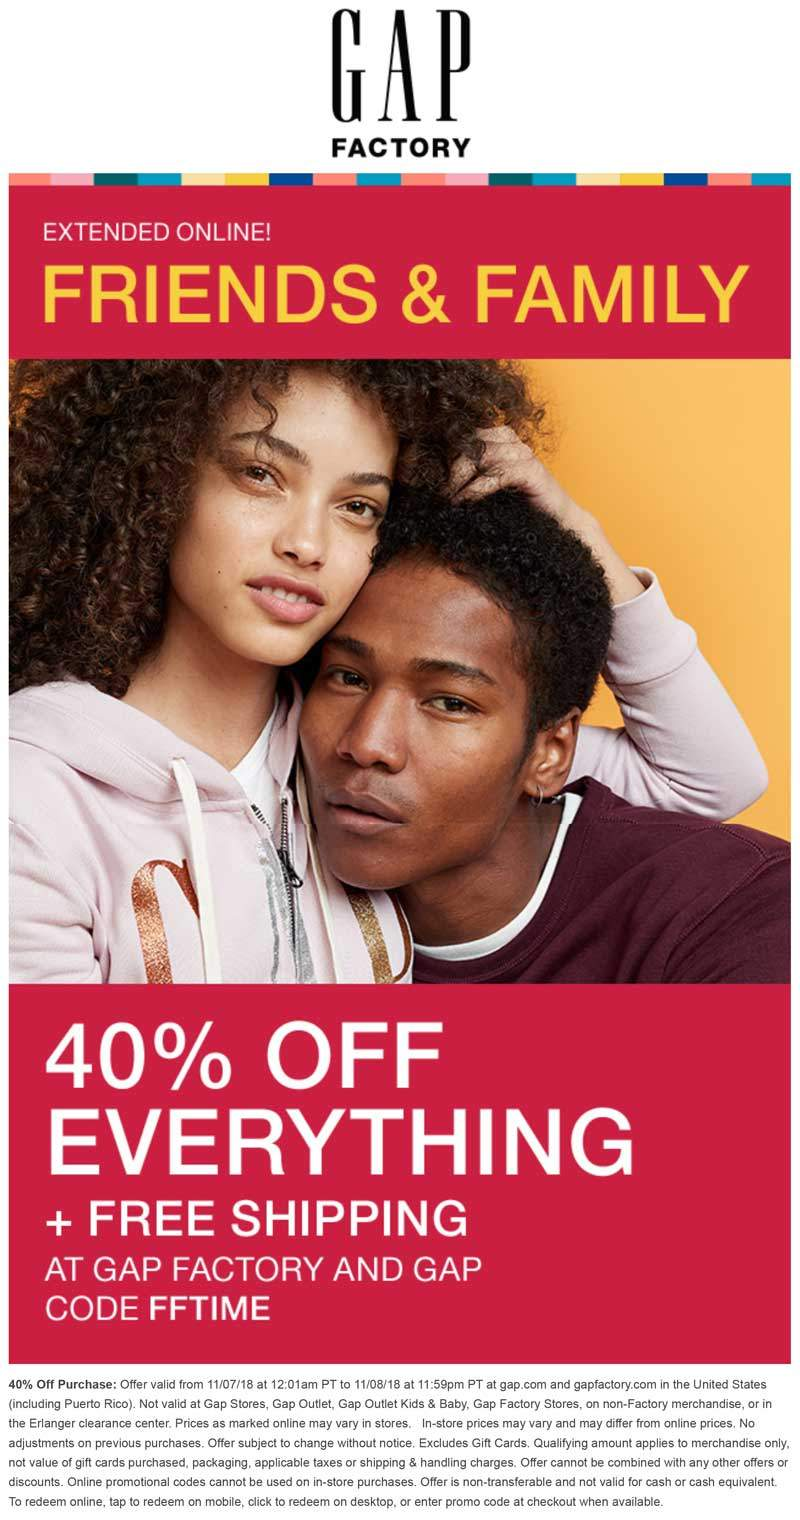 Gap Factory Coupon May 2019 40% off online today at Gap Factory via promo code FFTIME